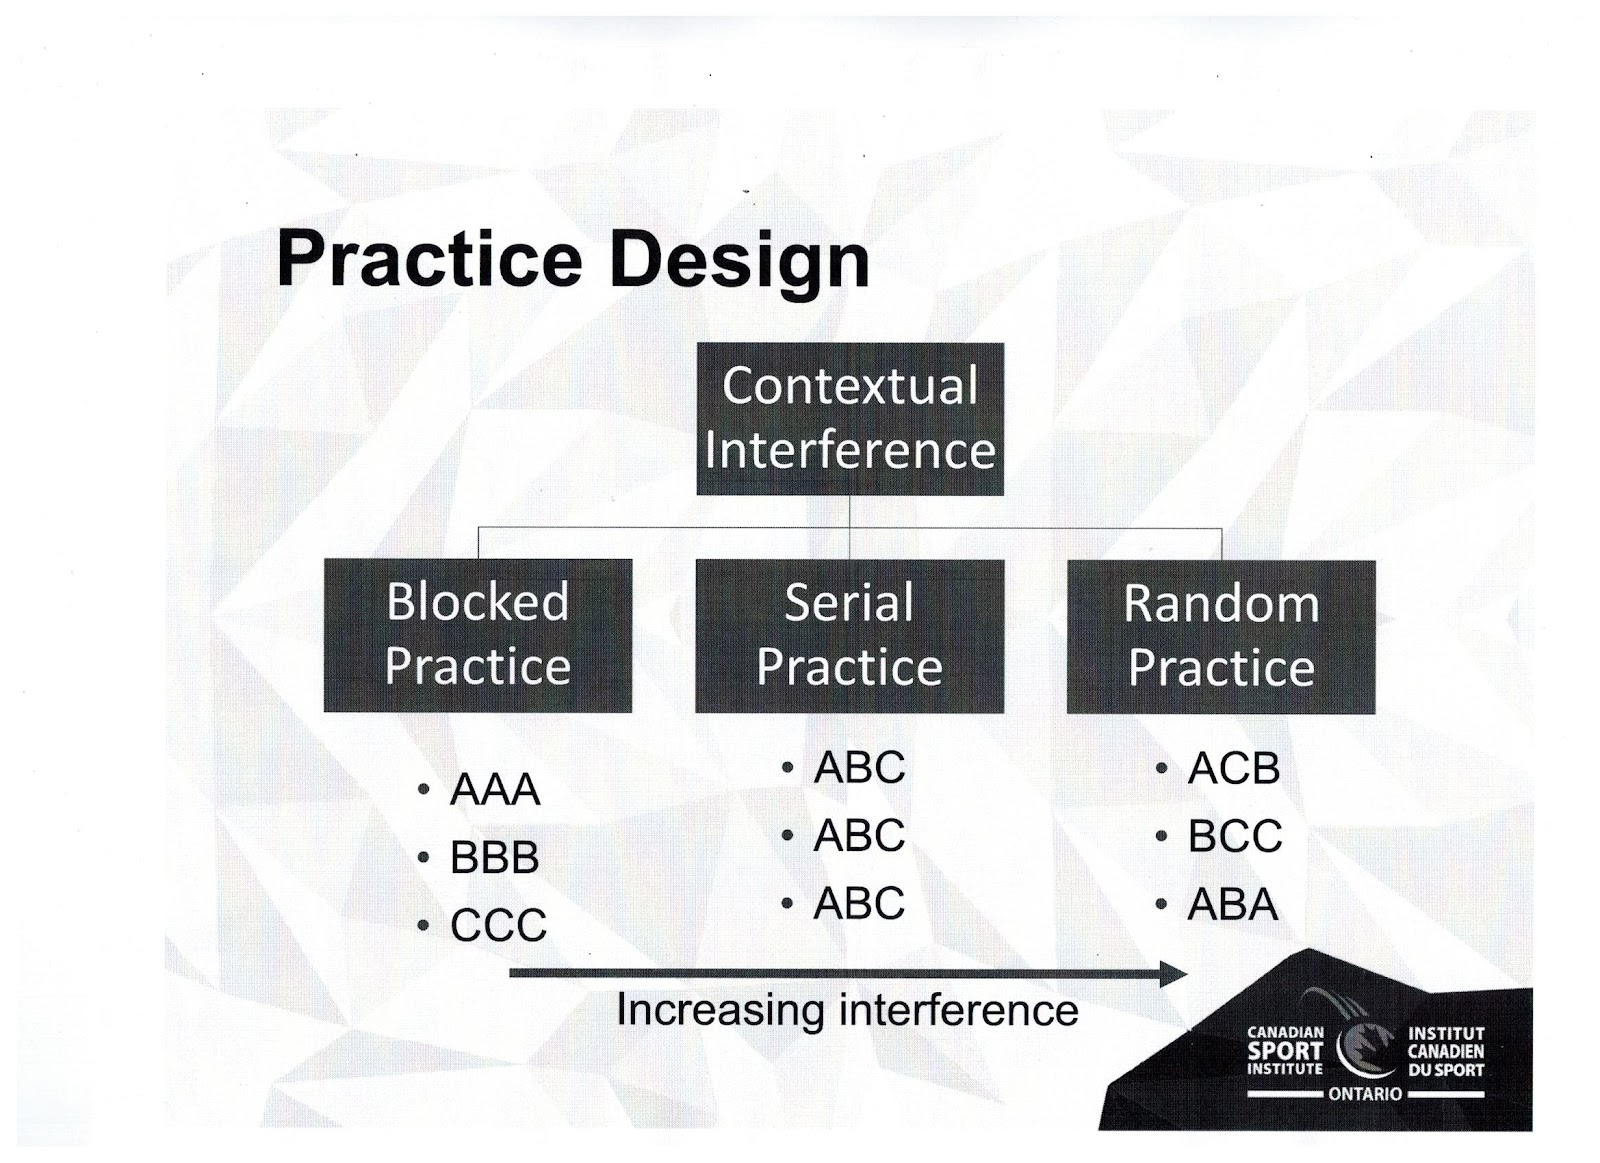 Image Of Practice Design Presentation Slide - Contextual Interference